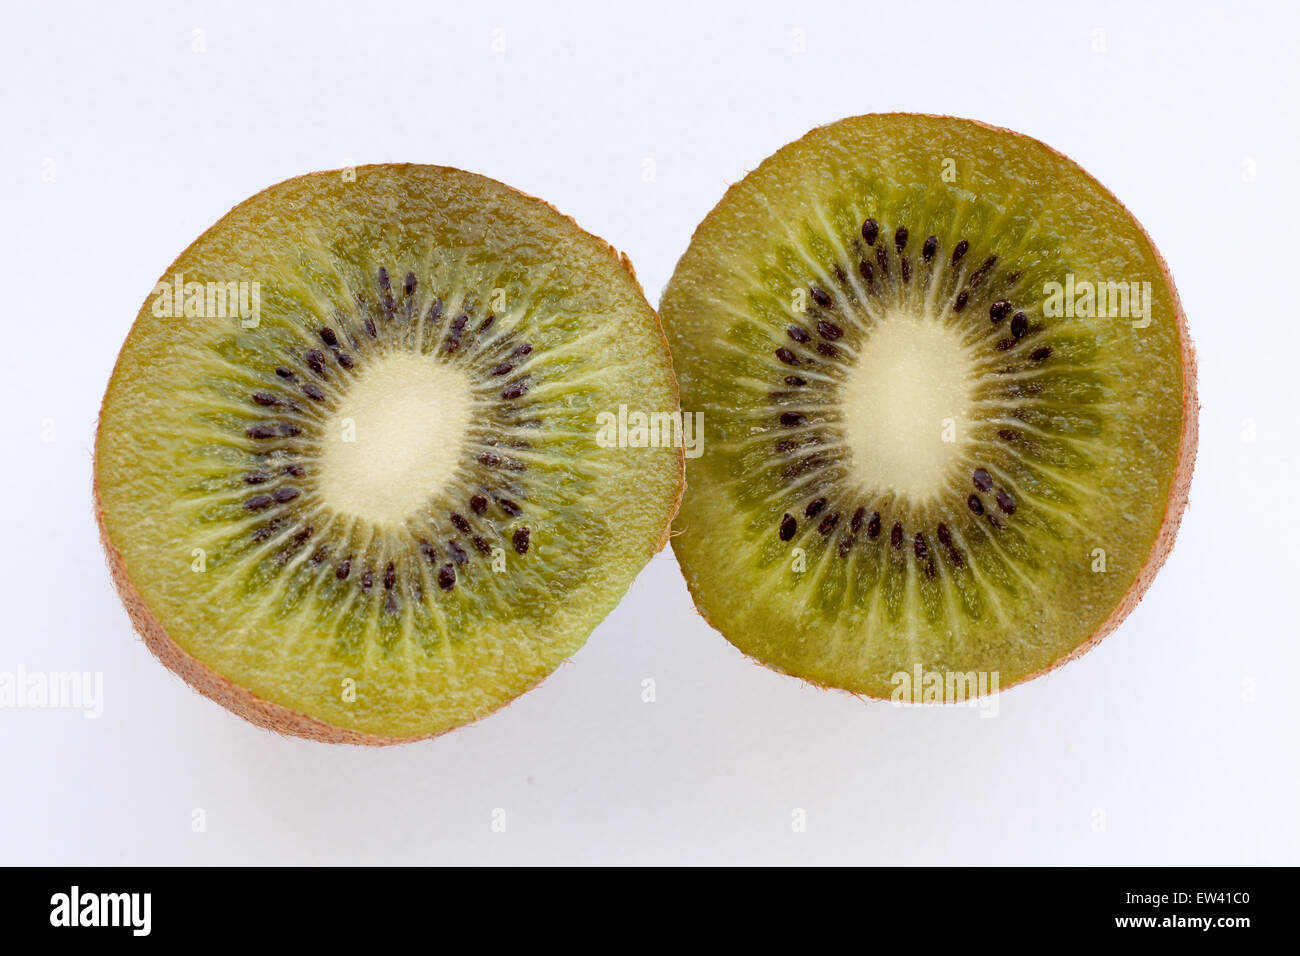 Ripe juicy kiwi on a white background - Stock Image